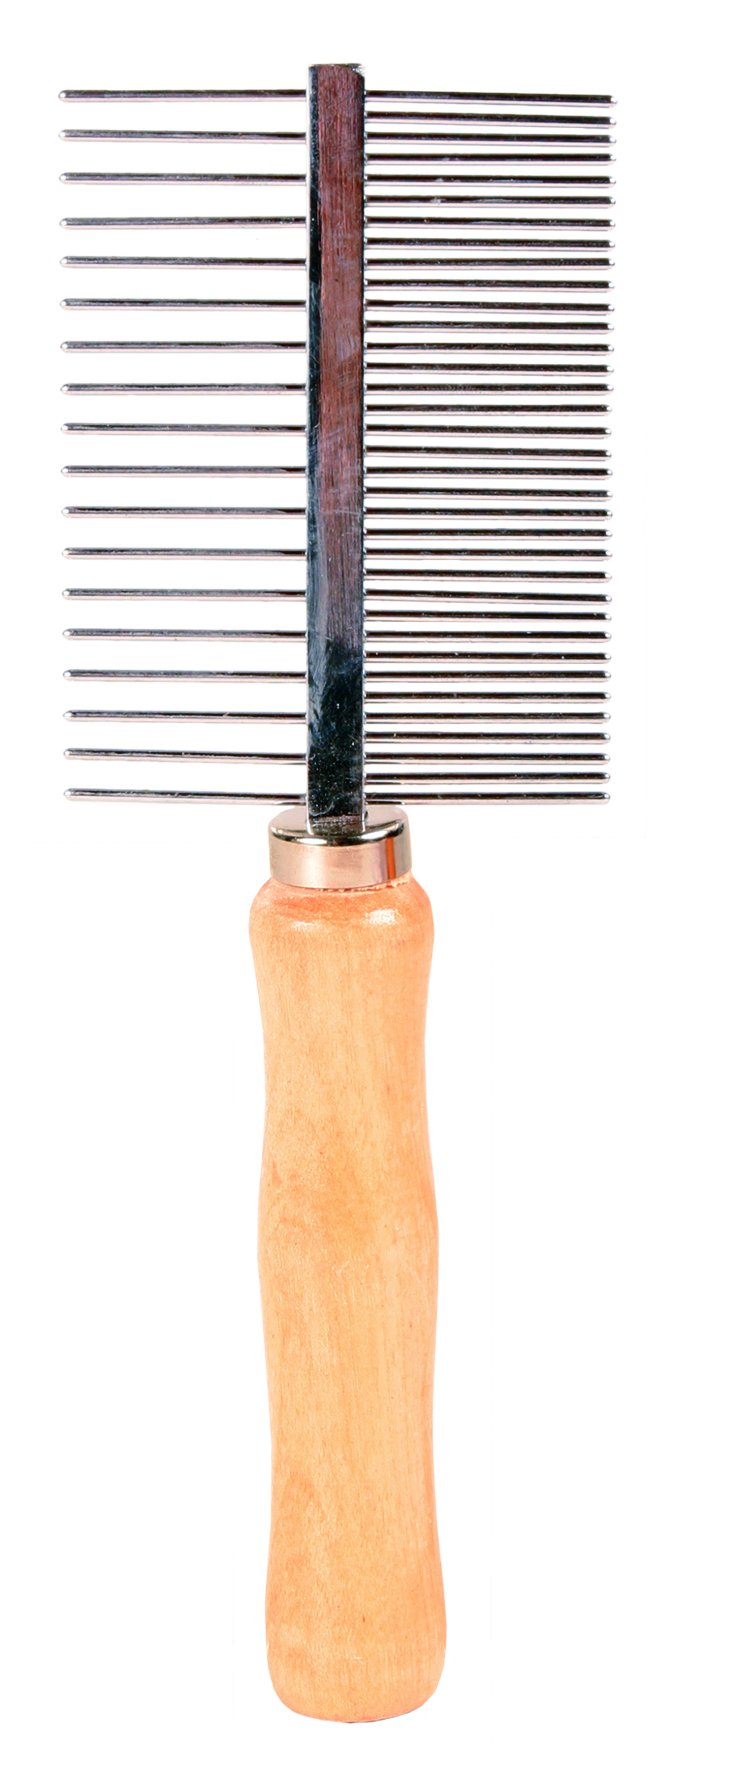 2396 Comb, double-sided, medium/wide teeth, 17 cm